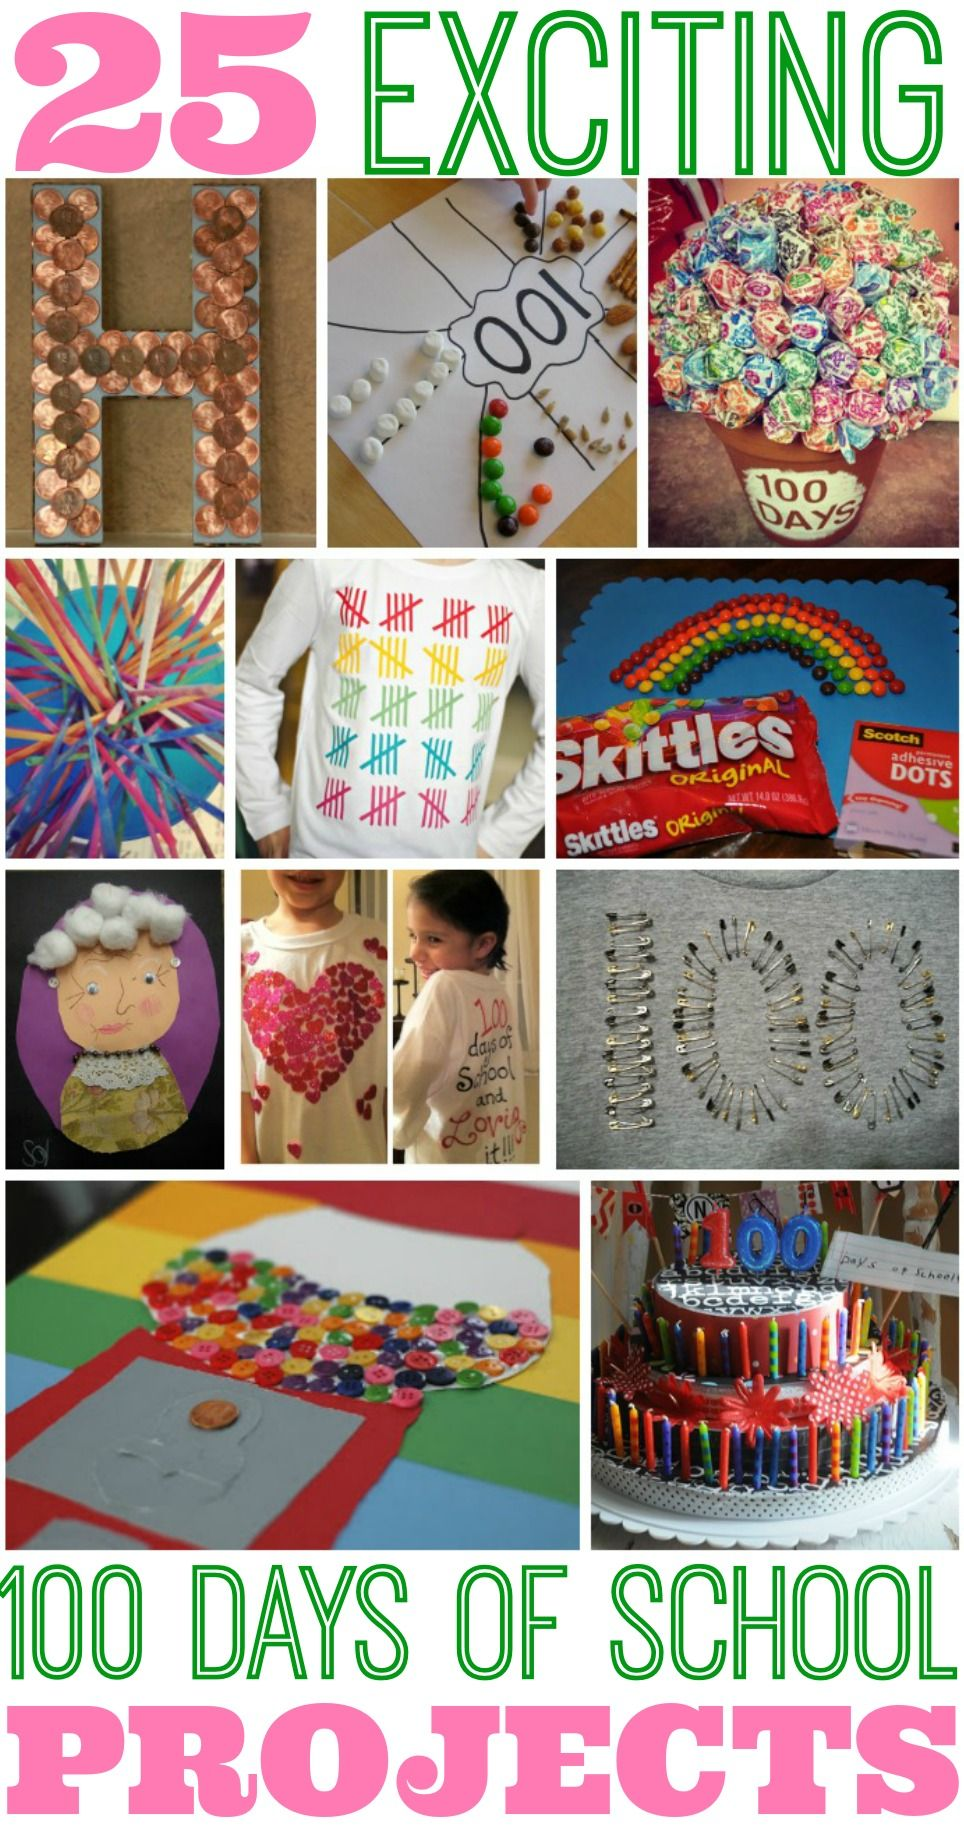 25 Best 100 Days Of School Project Ideas 100 Days Of School 100